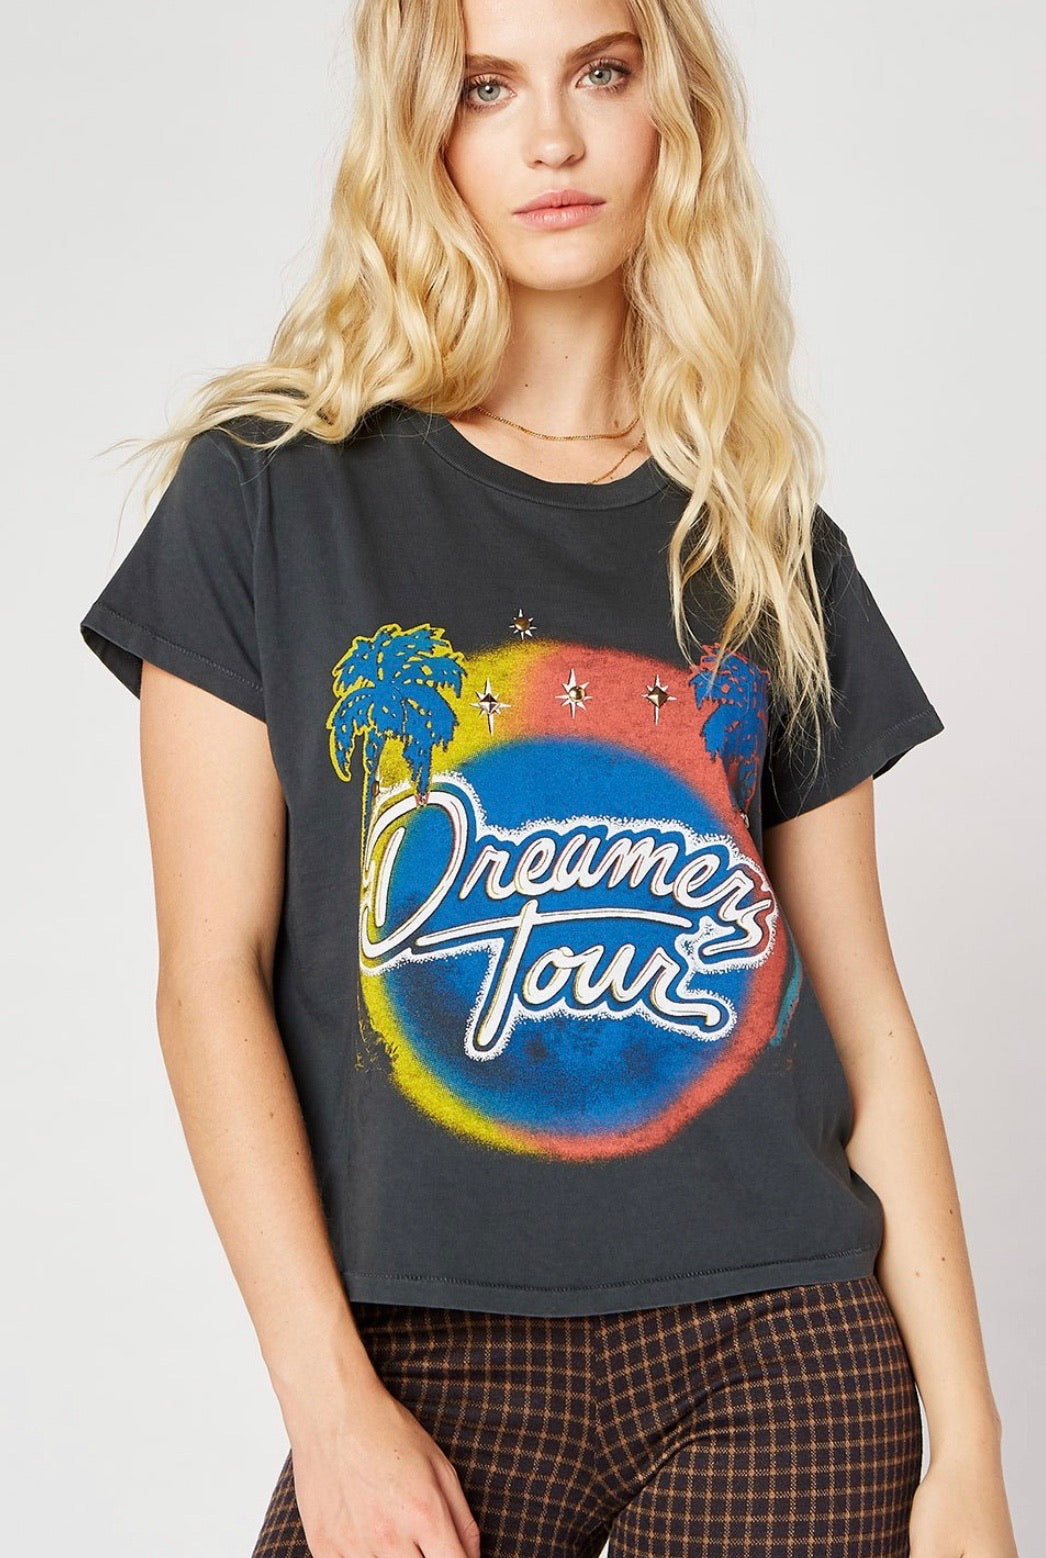 Dreamers Tour Studded Girlfriend Tee